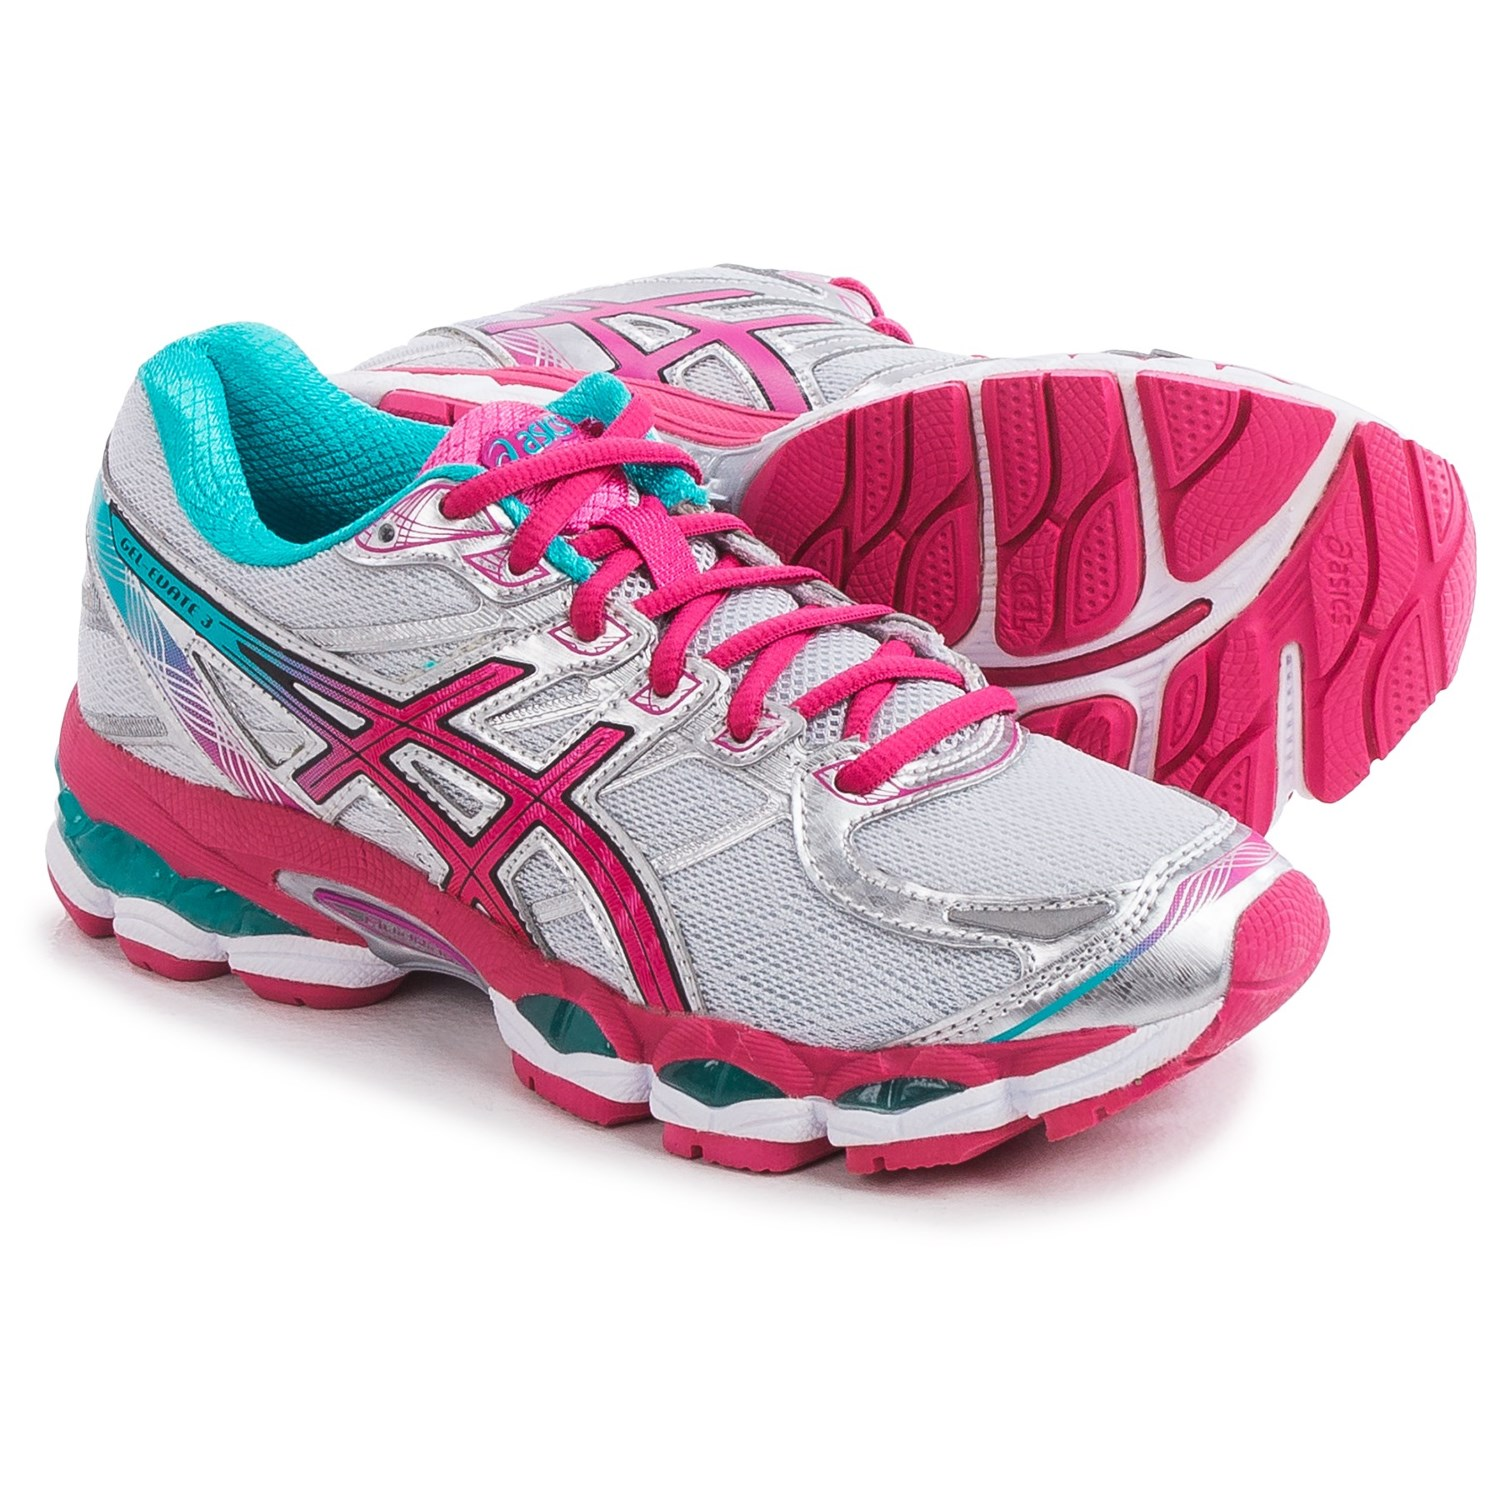 Mild Stability Running Shoes